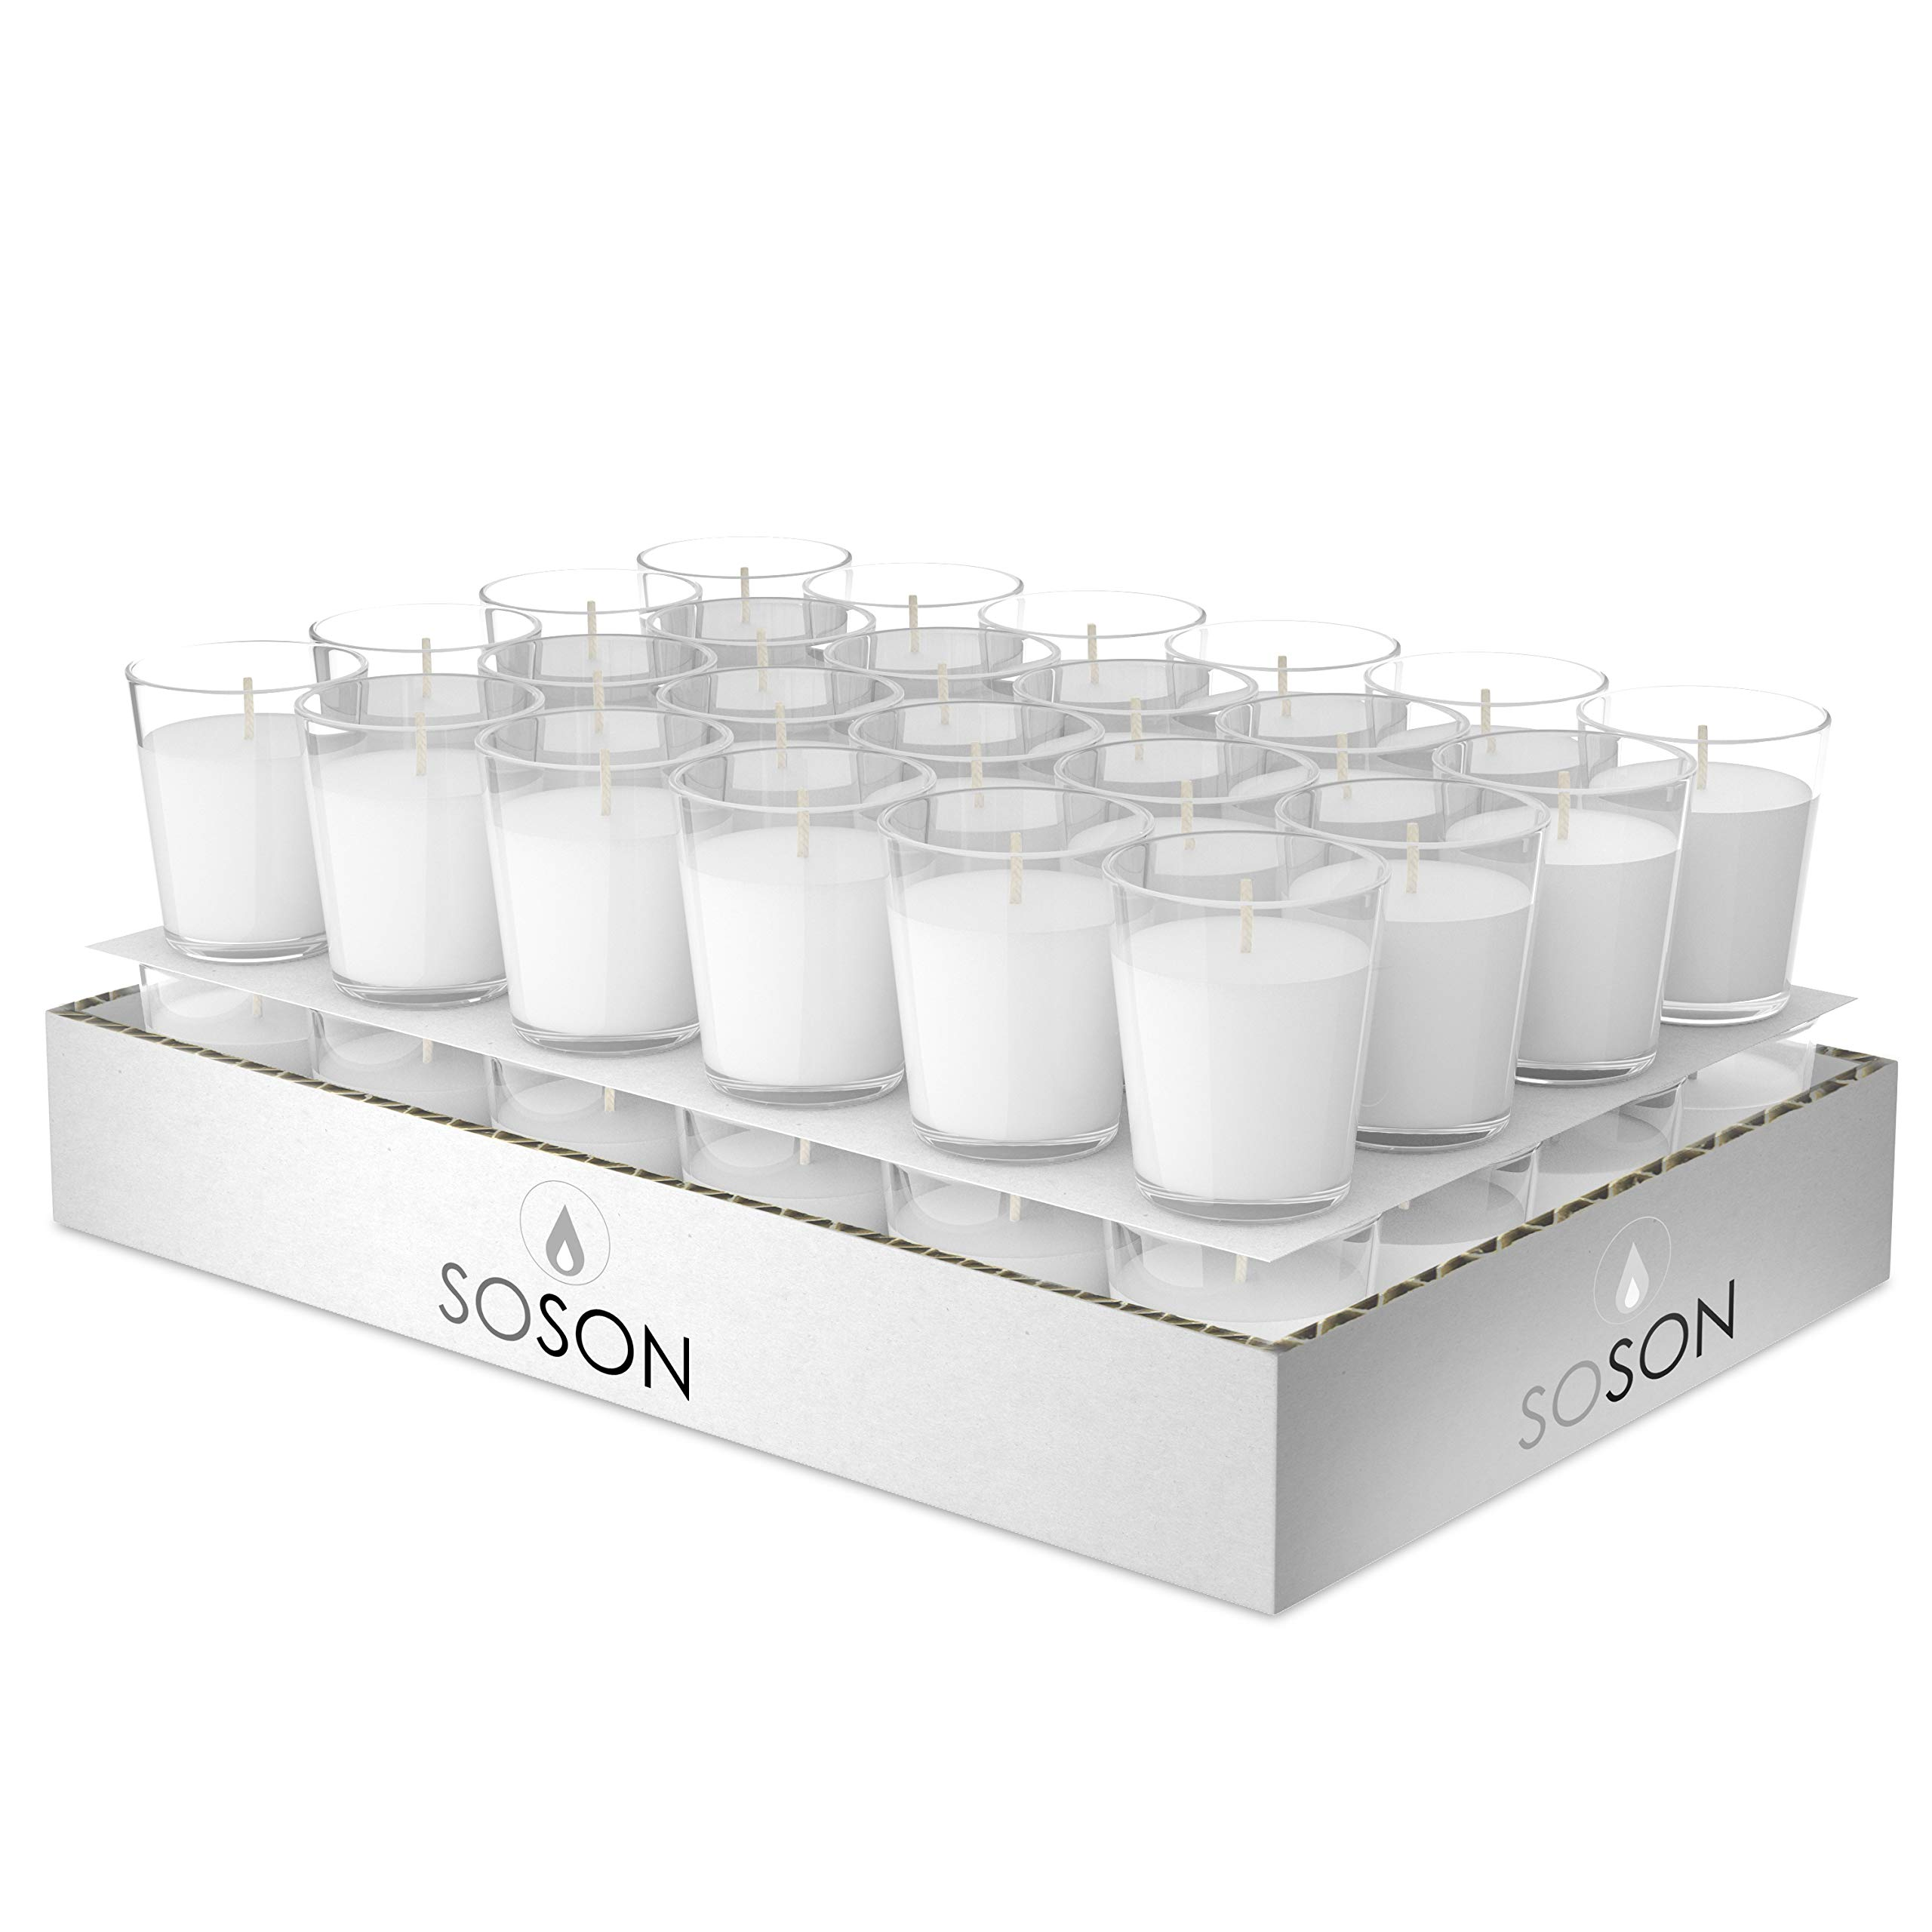 Simply Soson 48 Unscented Votive Candles in Glass | Wax Filled White Candles in Glass | 15 Hour Burn Time Votive Candles Bulk | Improved Packaging (48 Pack) Code 2274 by Simply Soson